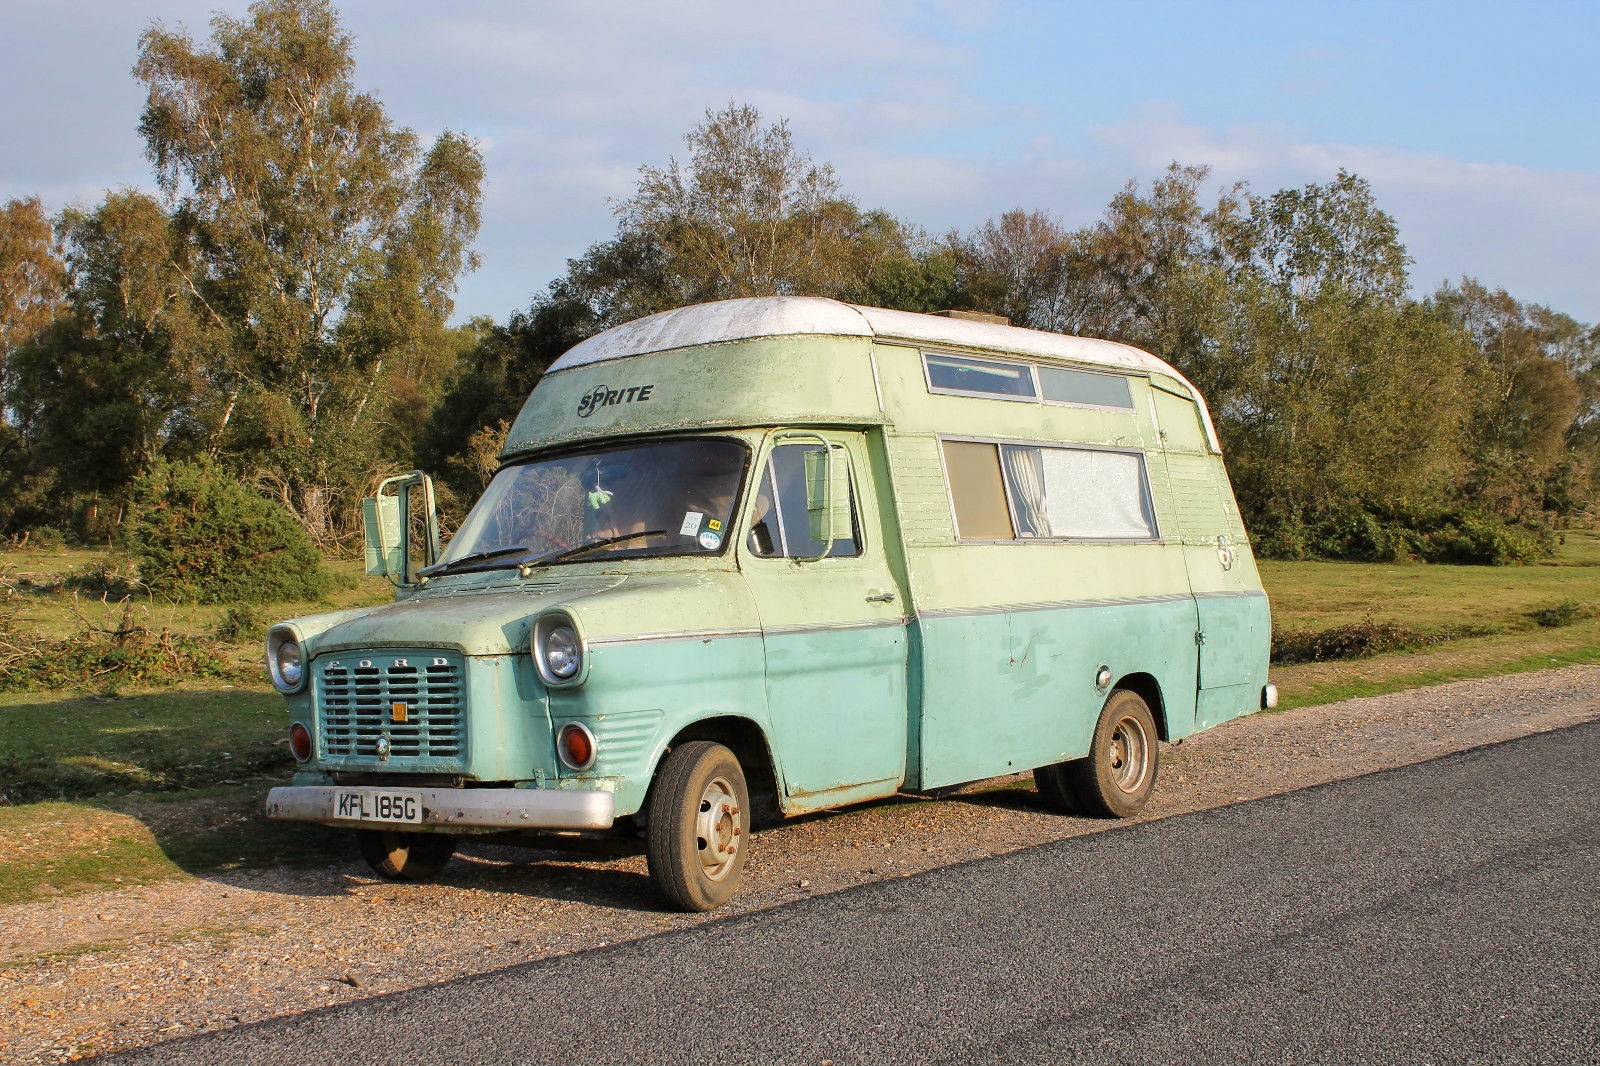 Used RVs 1968 Ford Transit MK1 Sprite Motorhome For Sale by Owner